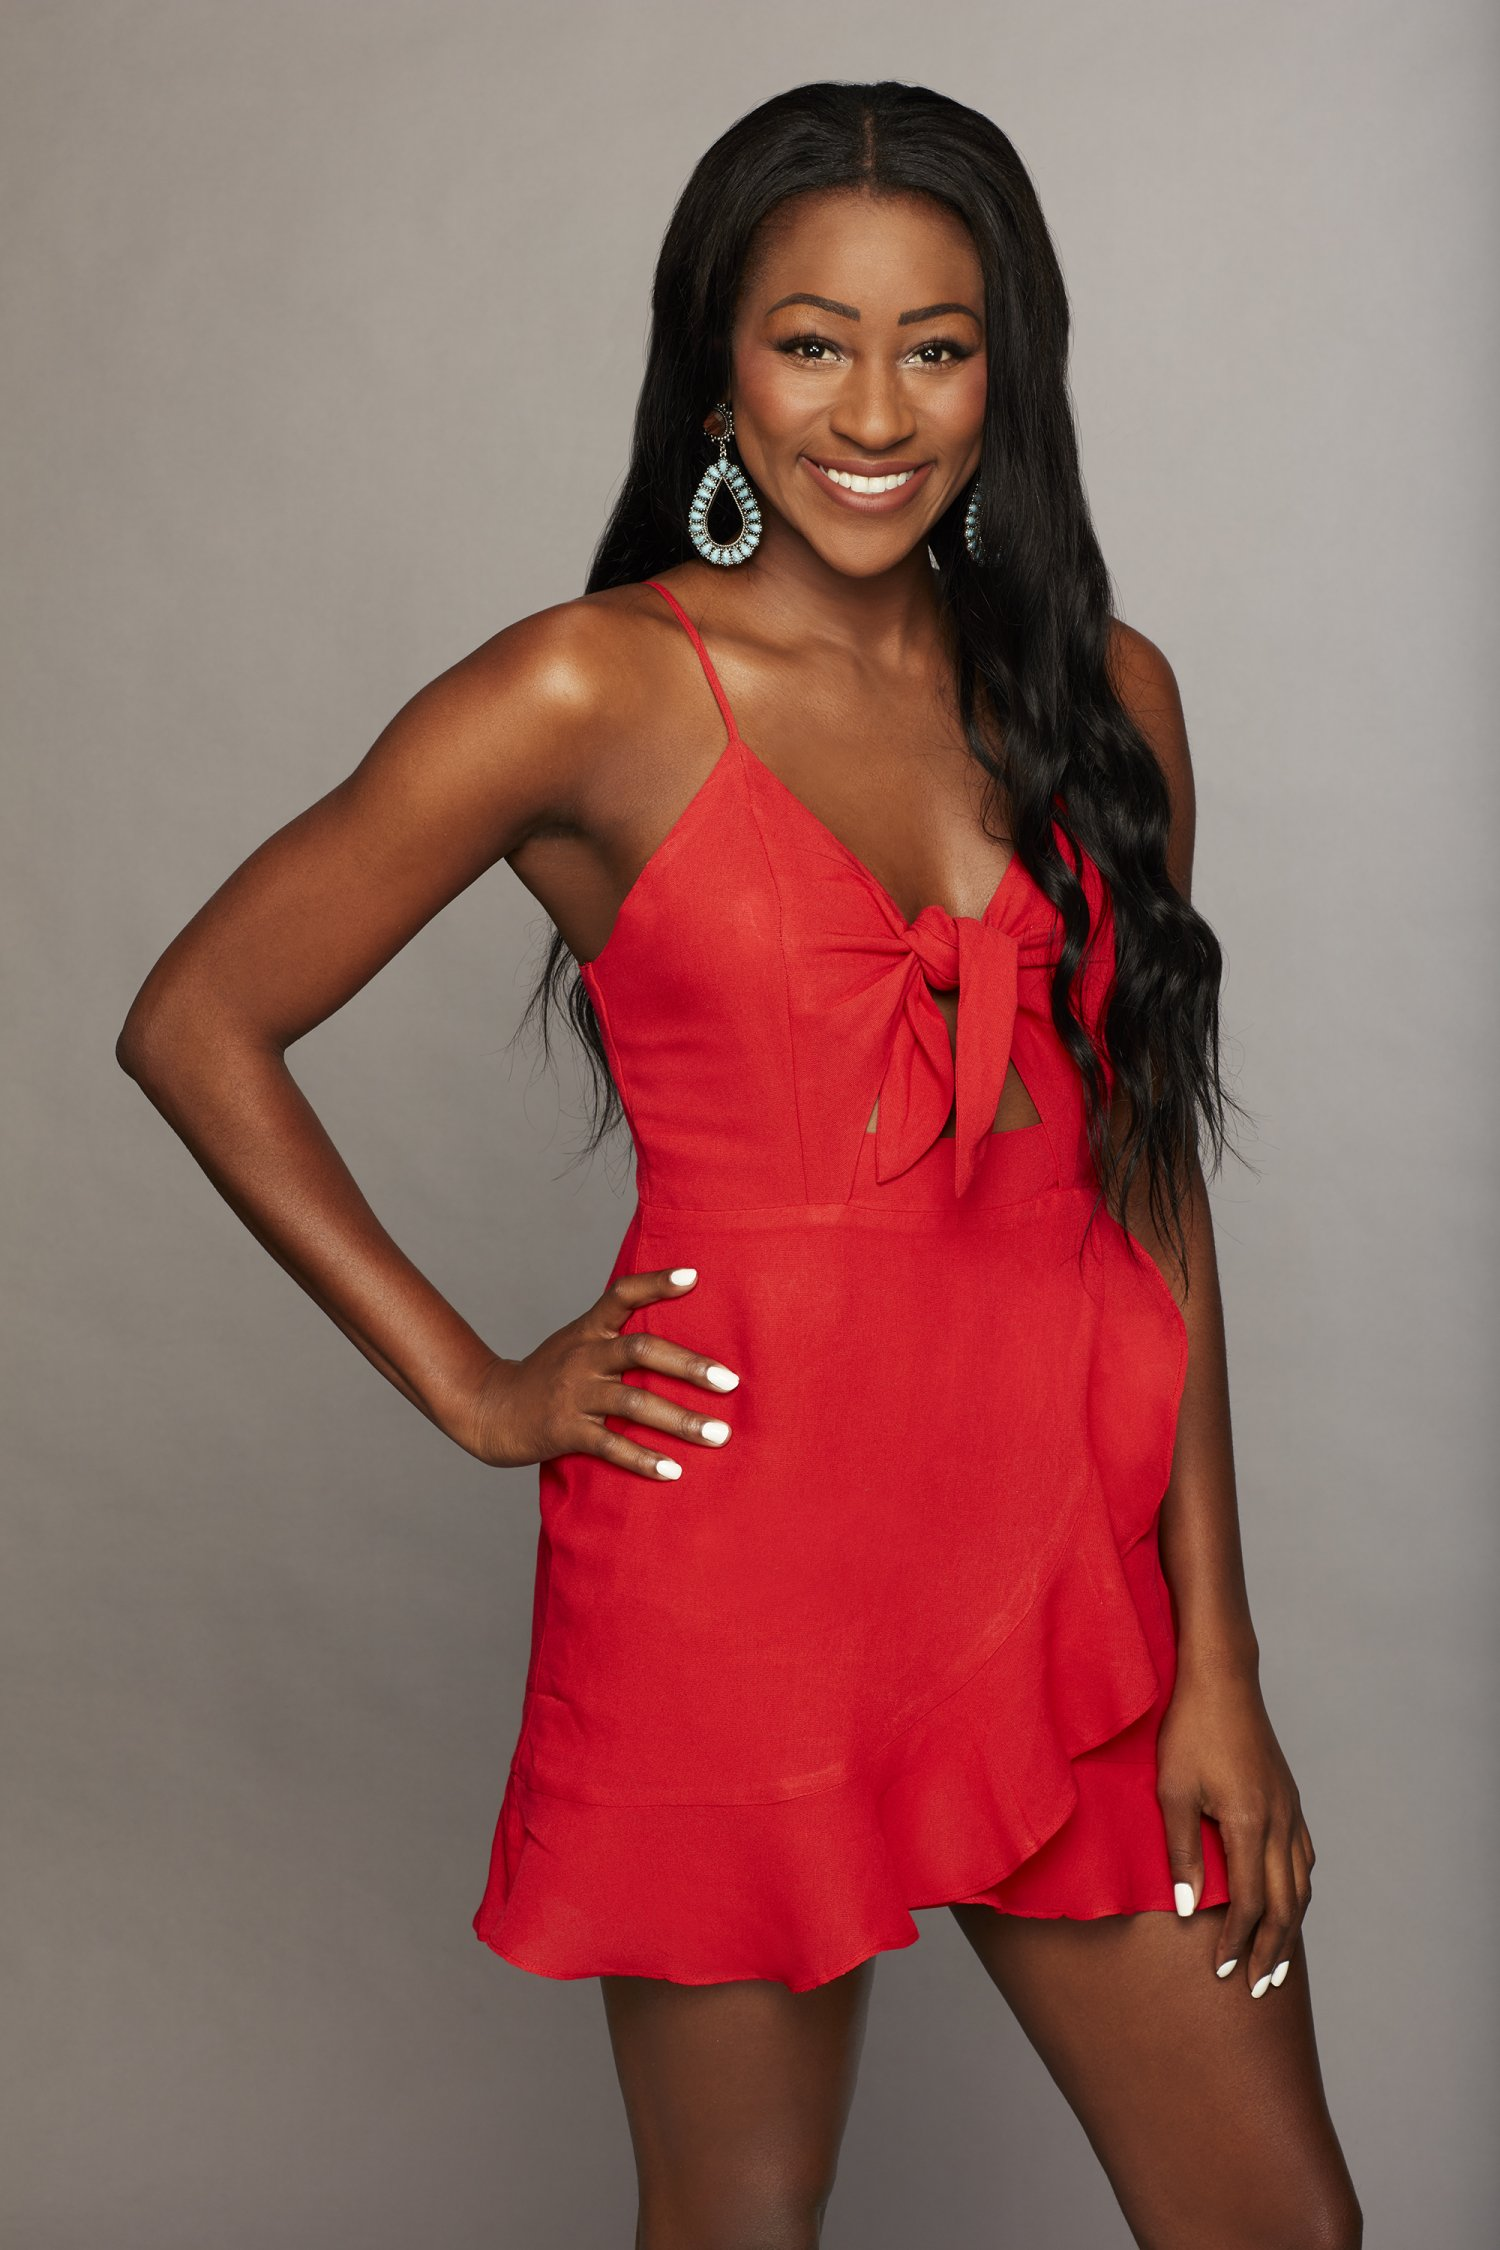 Bachelor 23 - Onyeka Ehie - Discussion - *Sleuthing Spoilers*  4852-o